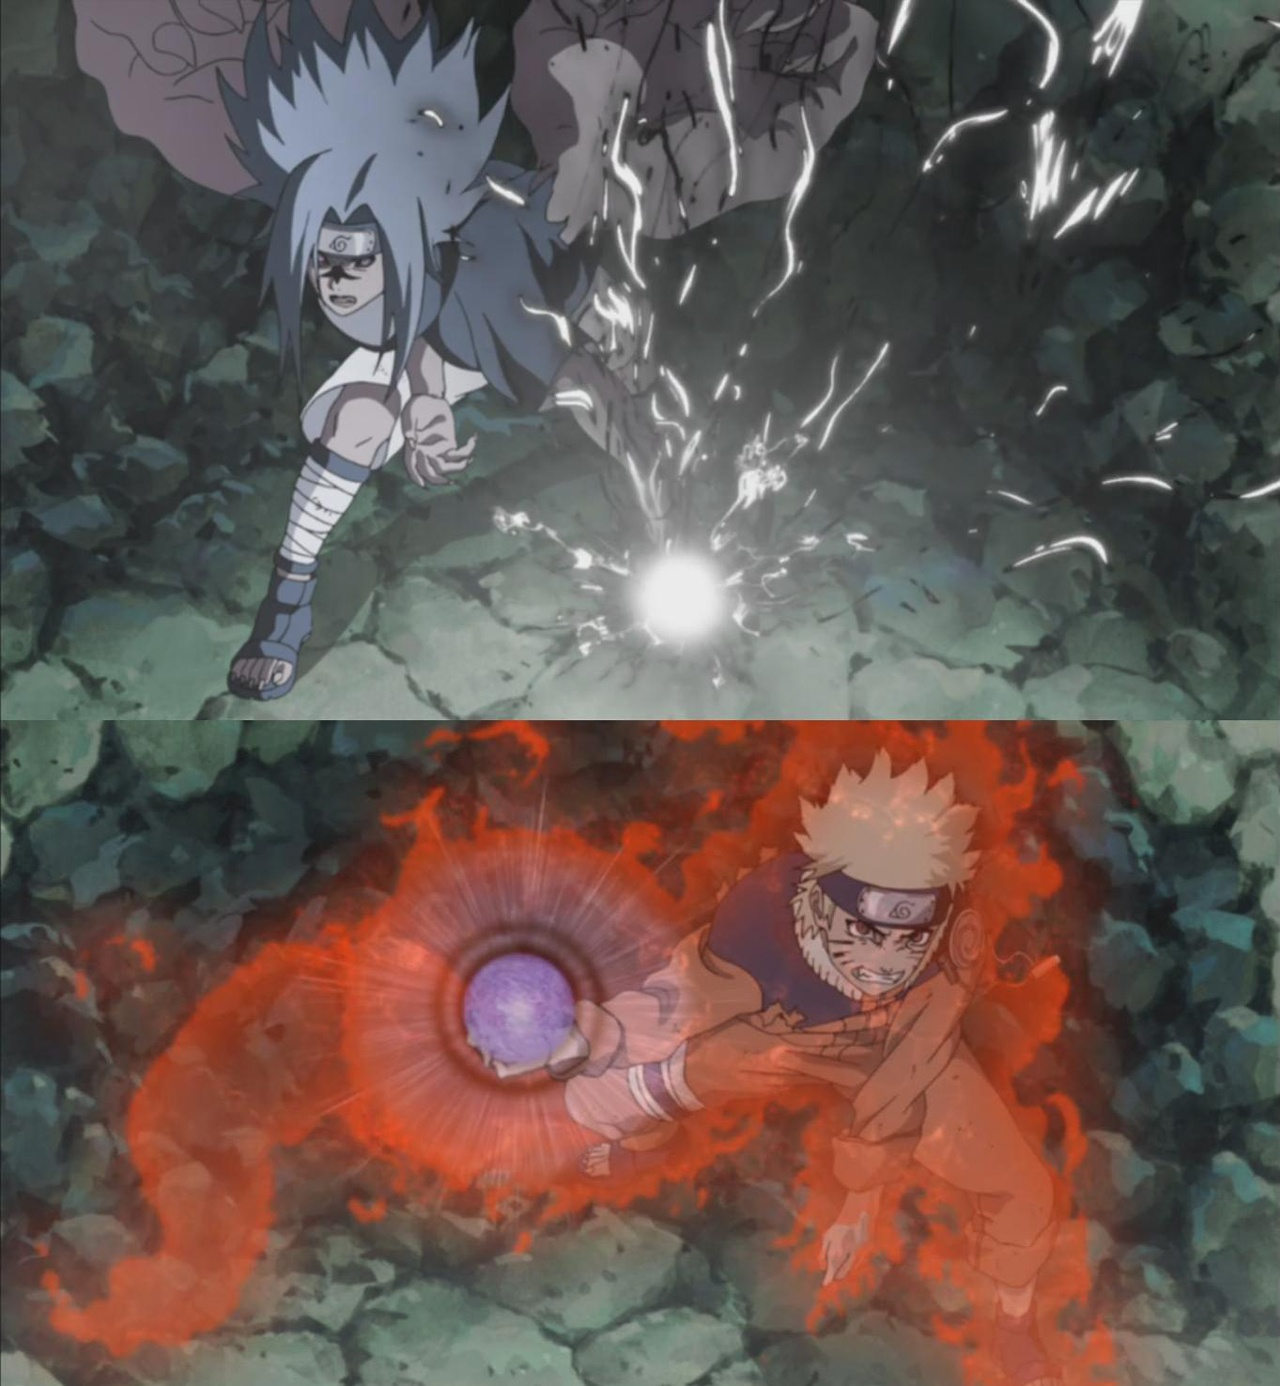 full naruto amp naruto shippuden episodes list 2016 guide - HD 1280×1386